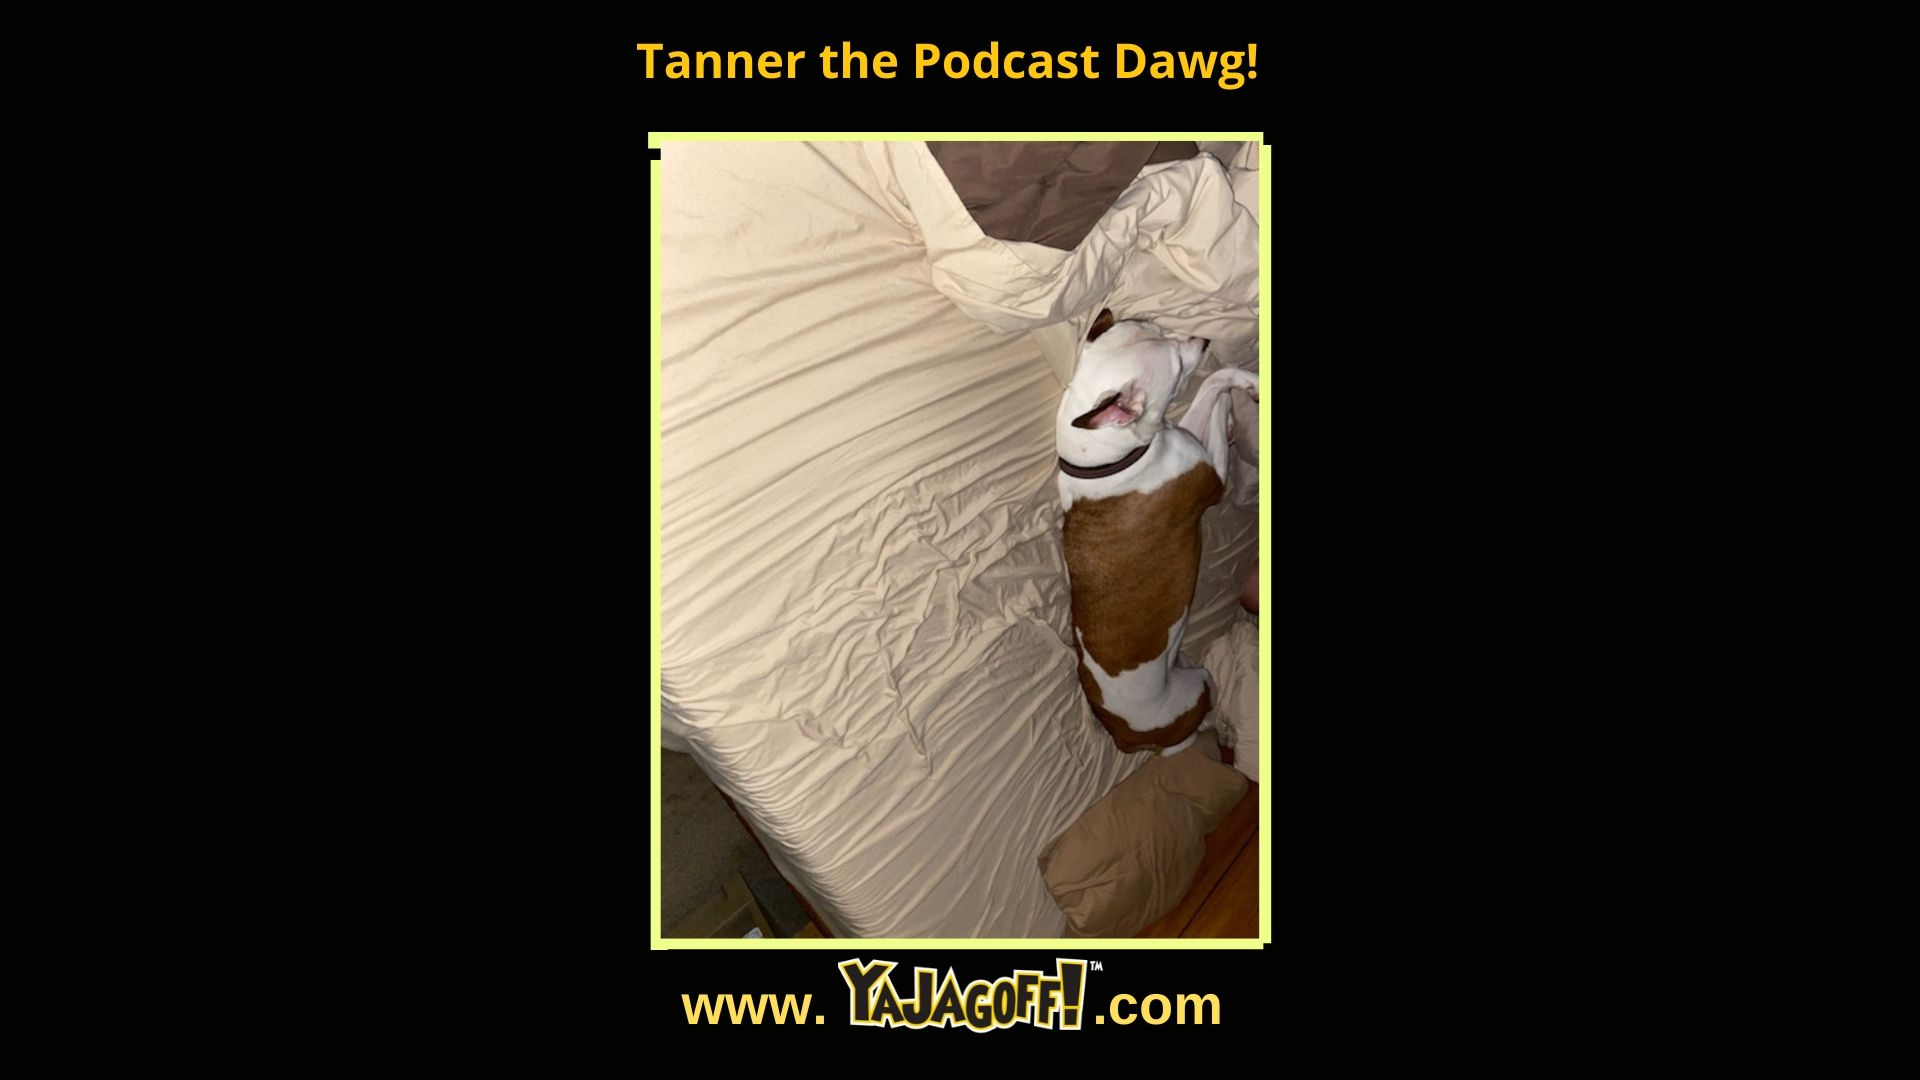 YaJagoff Blog, Tanner the Podcast Dog